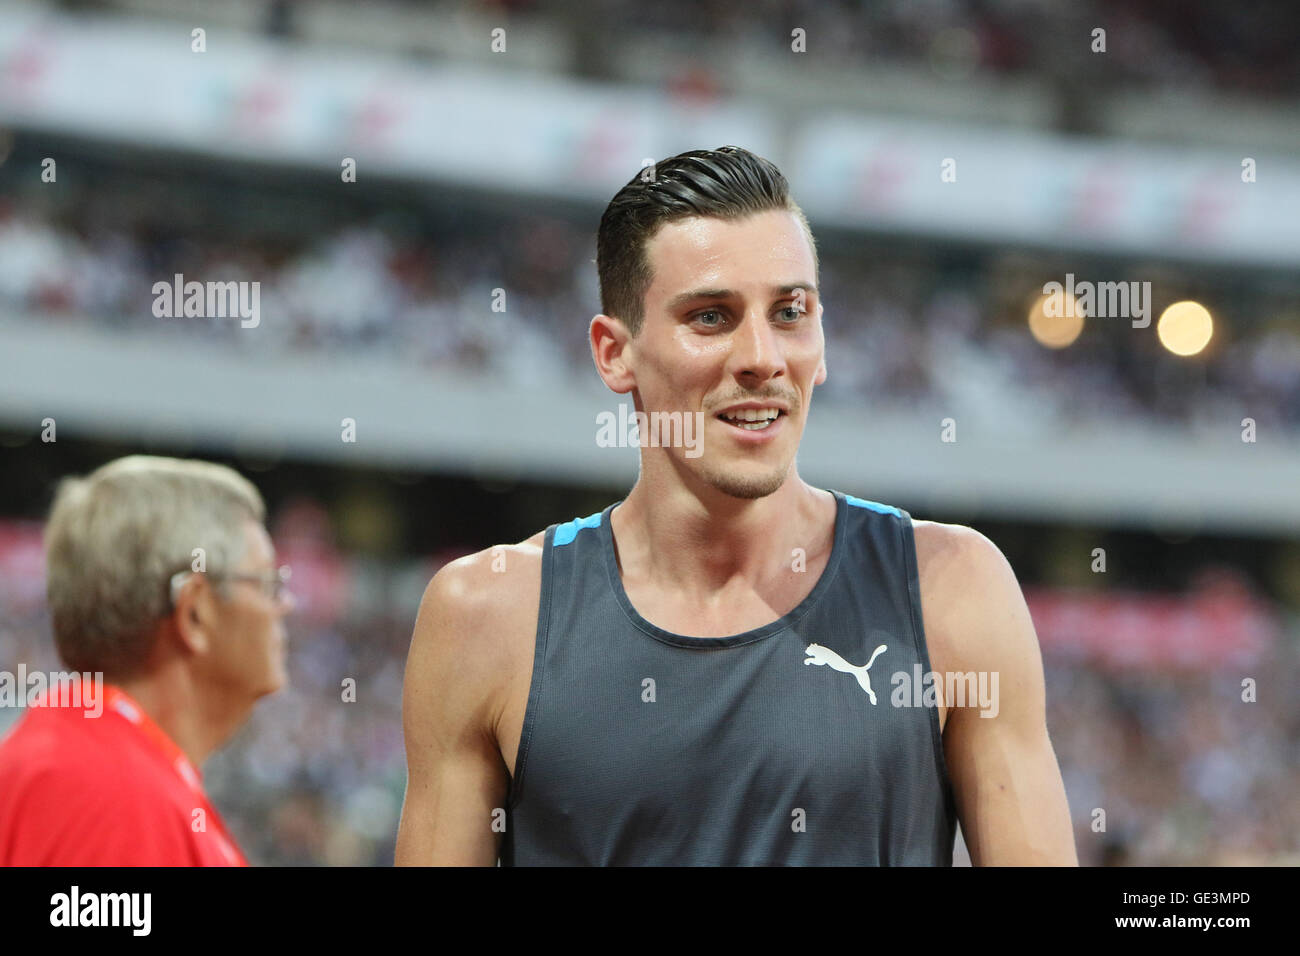 London, UK. 22nd July, 2016. IAAF Diamond League Anniversary Games. Vicout takes first place in the mens 100m. Credit: - Stock Image